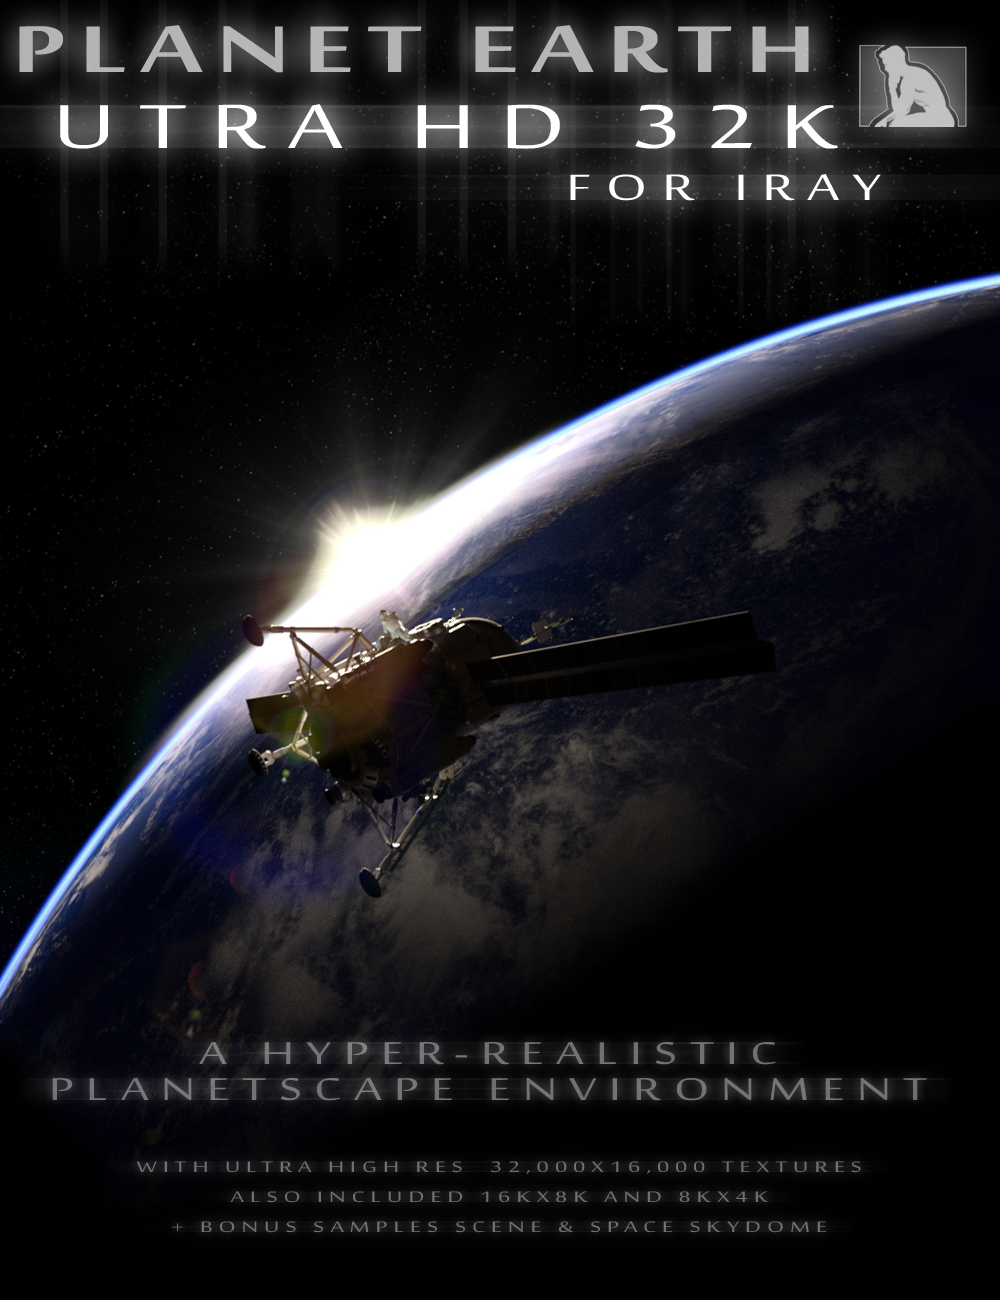 Planet Earth UTRA HD 32K for Iray by: ThePhilosopher, 3D Models by Daz 3D